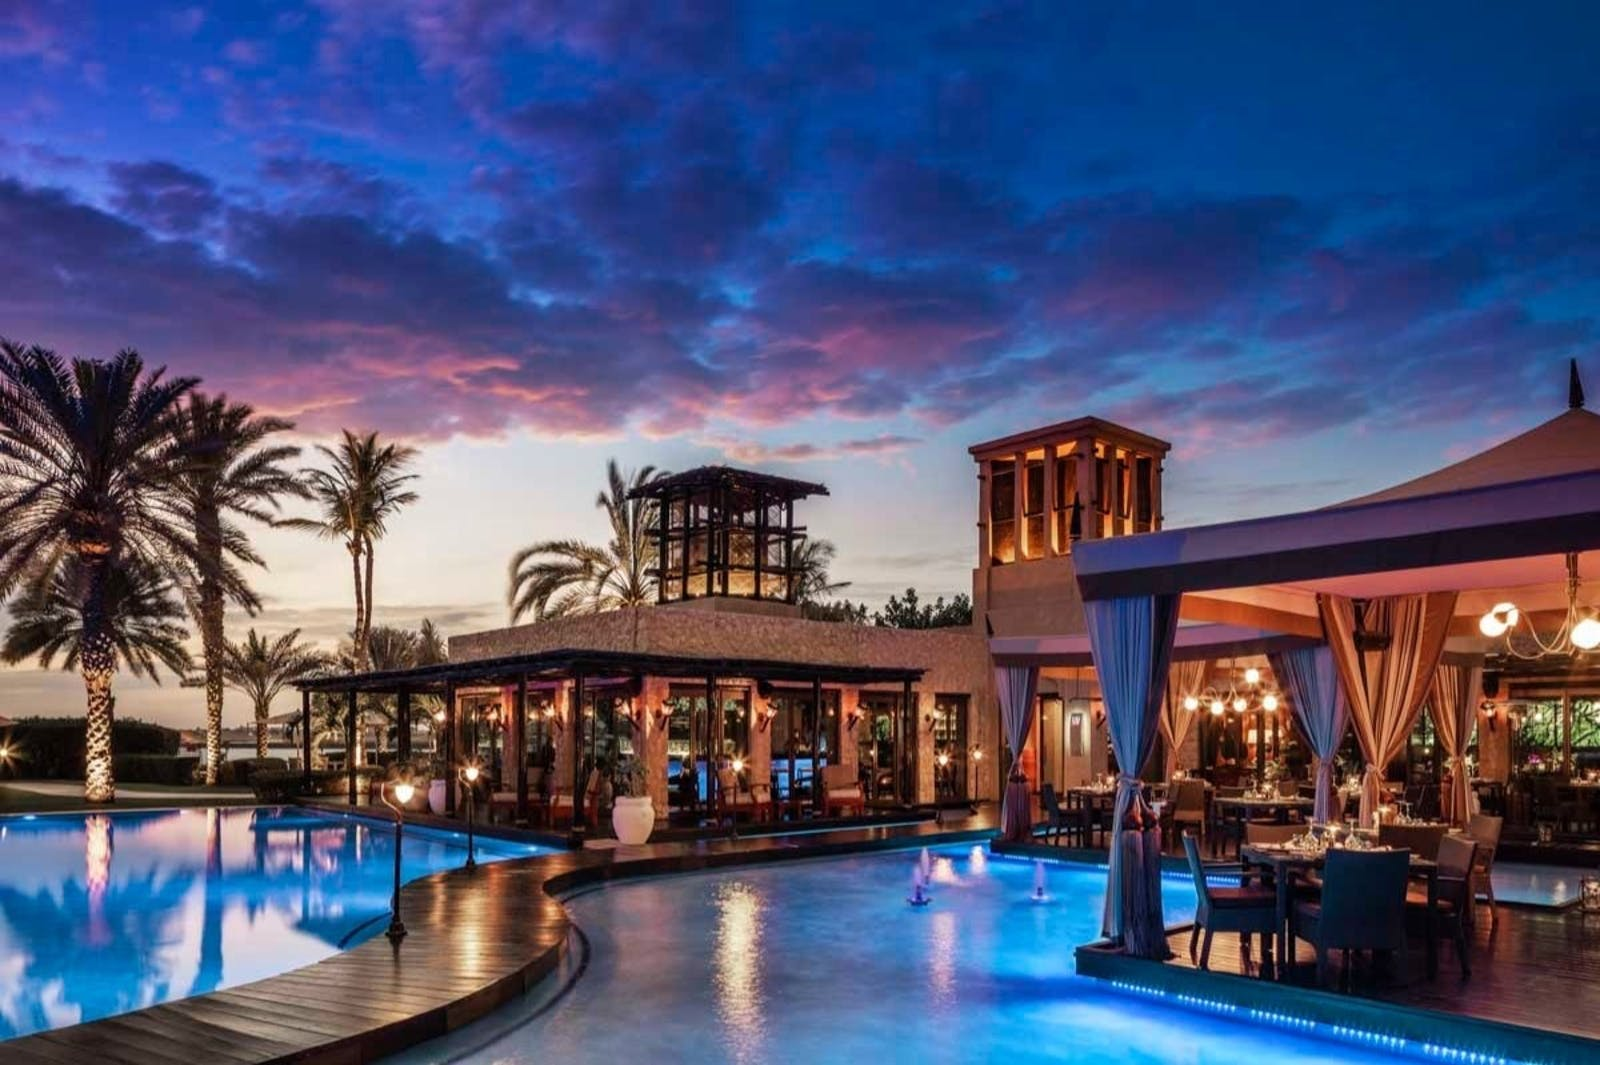 Eauzone Restaurant at One&Only Royal Mirage, Dubai